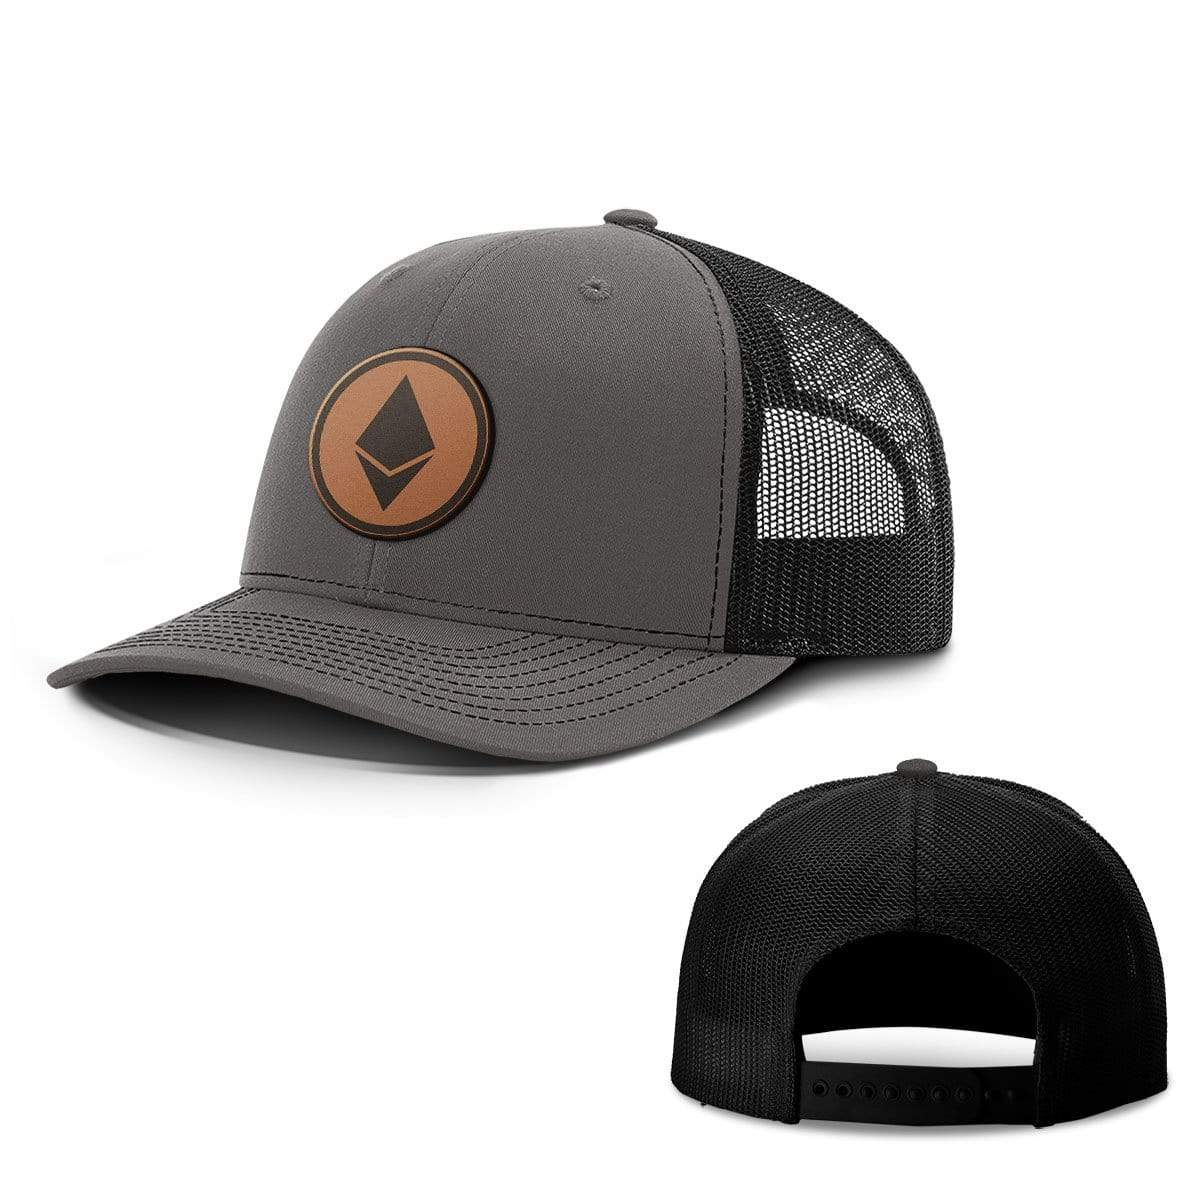 SunFrog-Busted Hats Snapback / Charcoal and Black / One Size Etheruem Leather Patch Hats